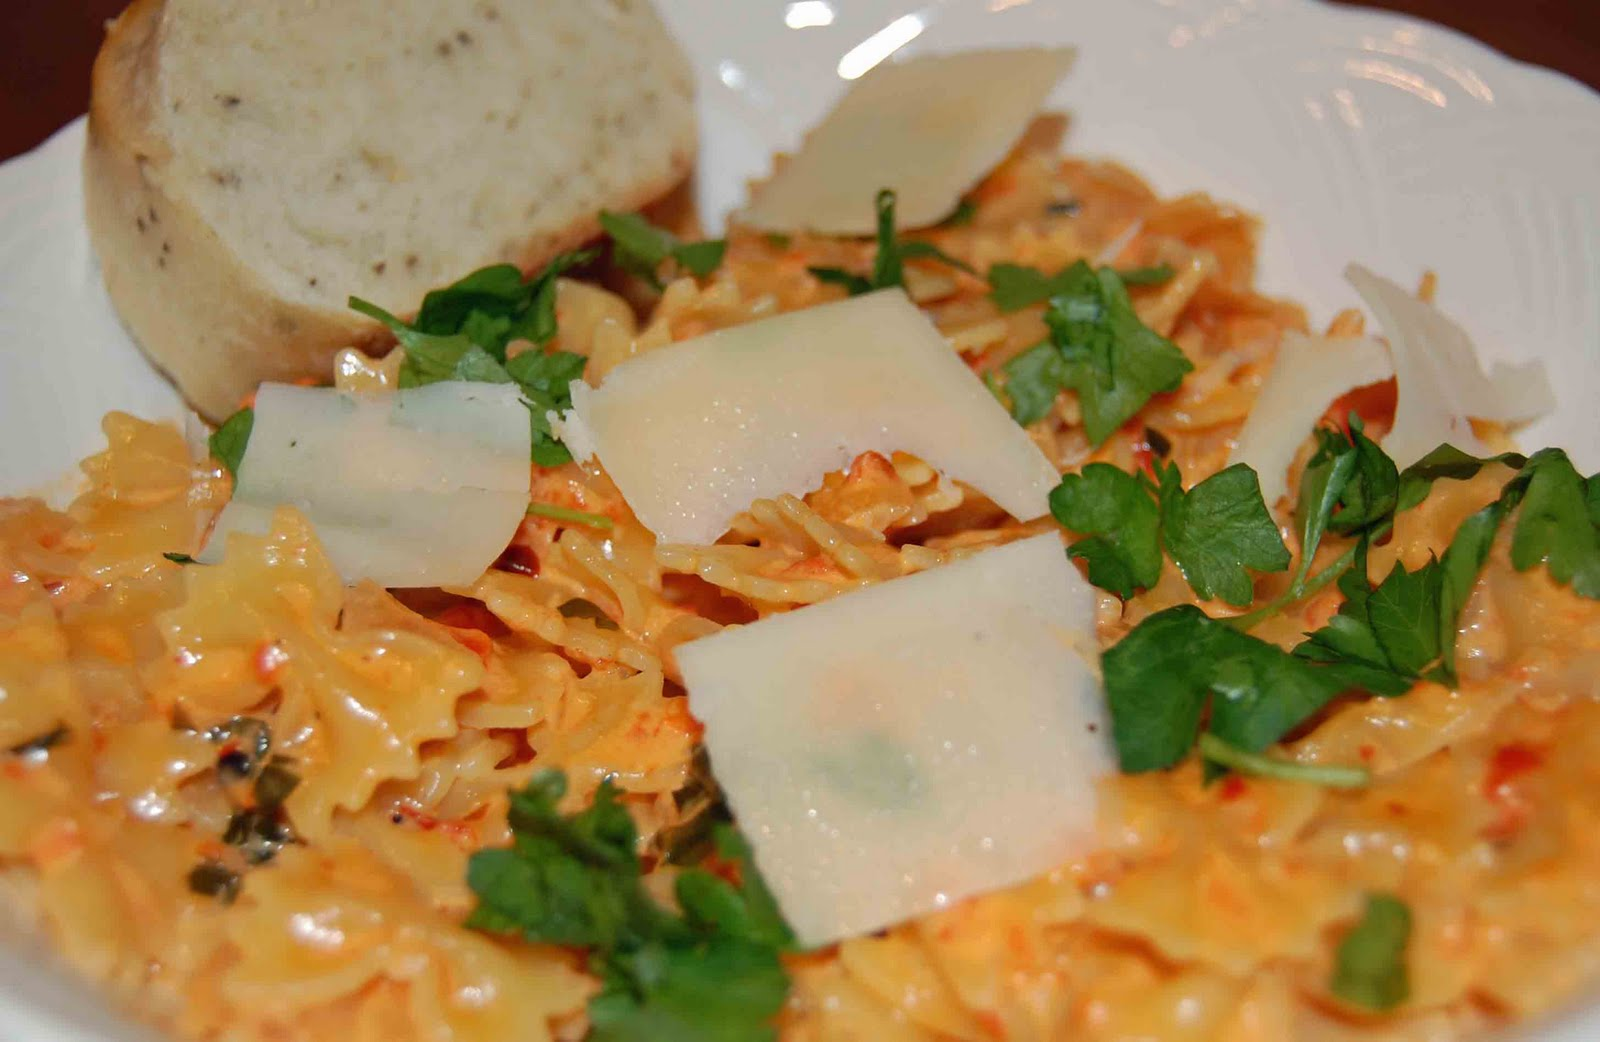 ... roasted red pepper and cream sauce pasta with roasted red pepper sauce